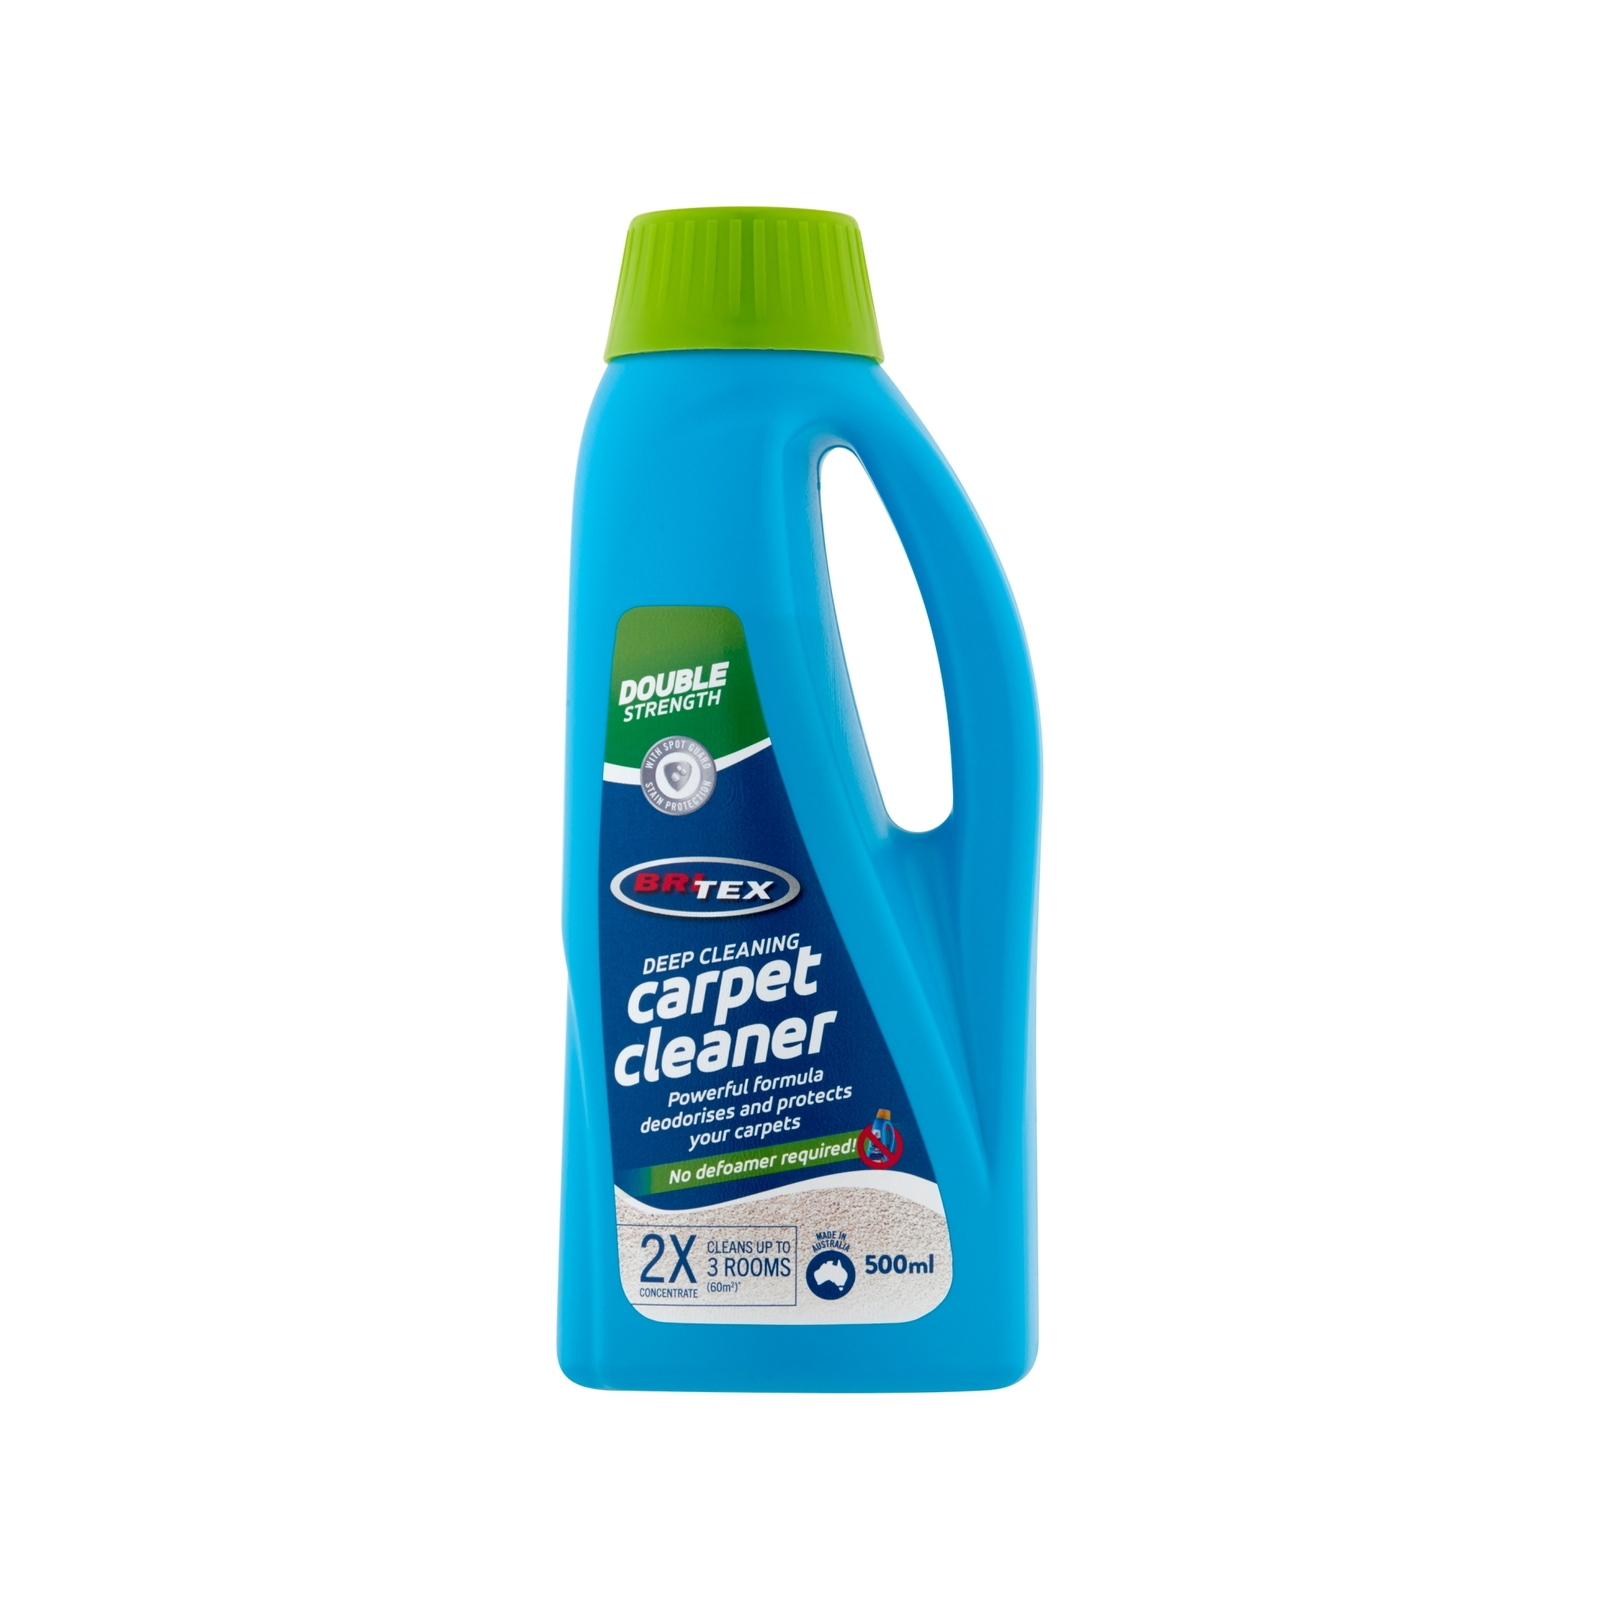 Britex 500ml Concentrated Carpet Cleaner